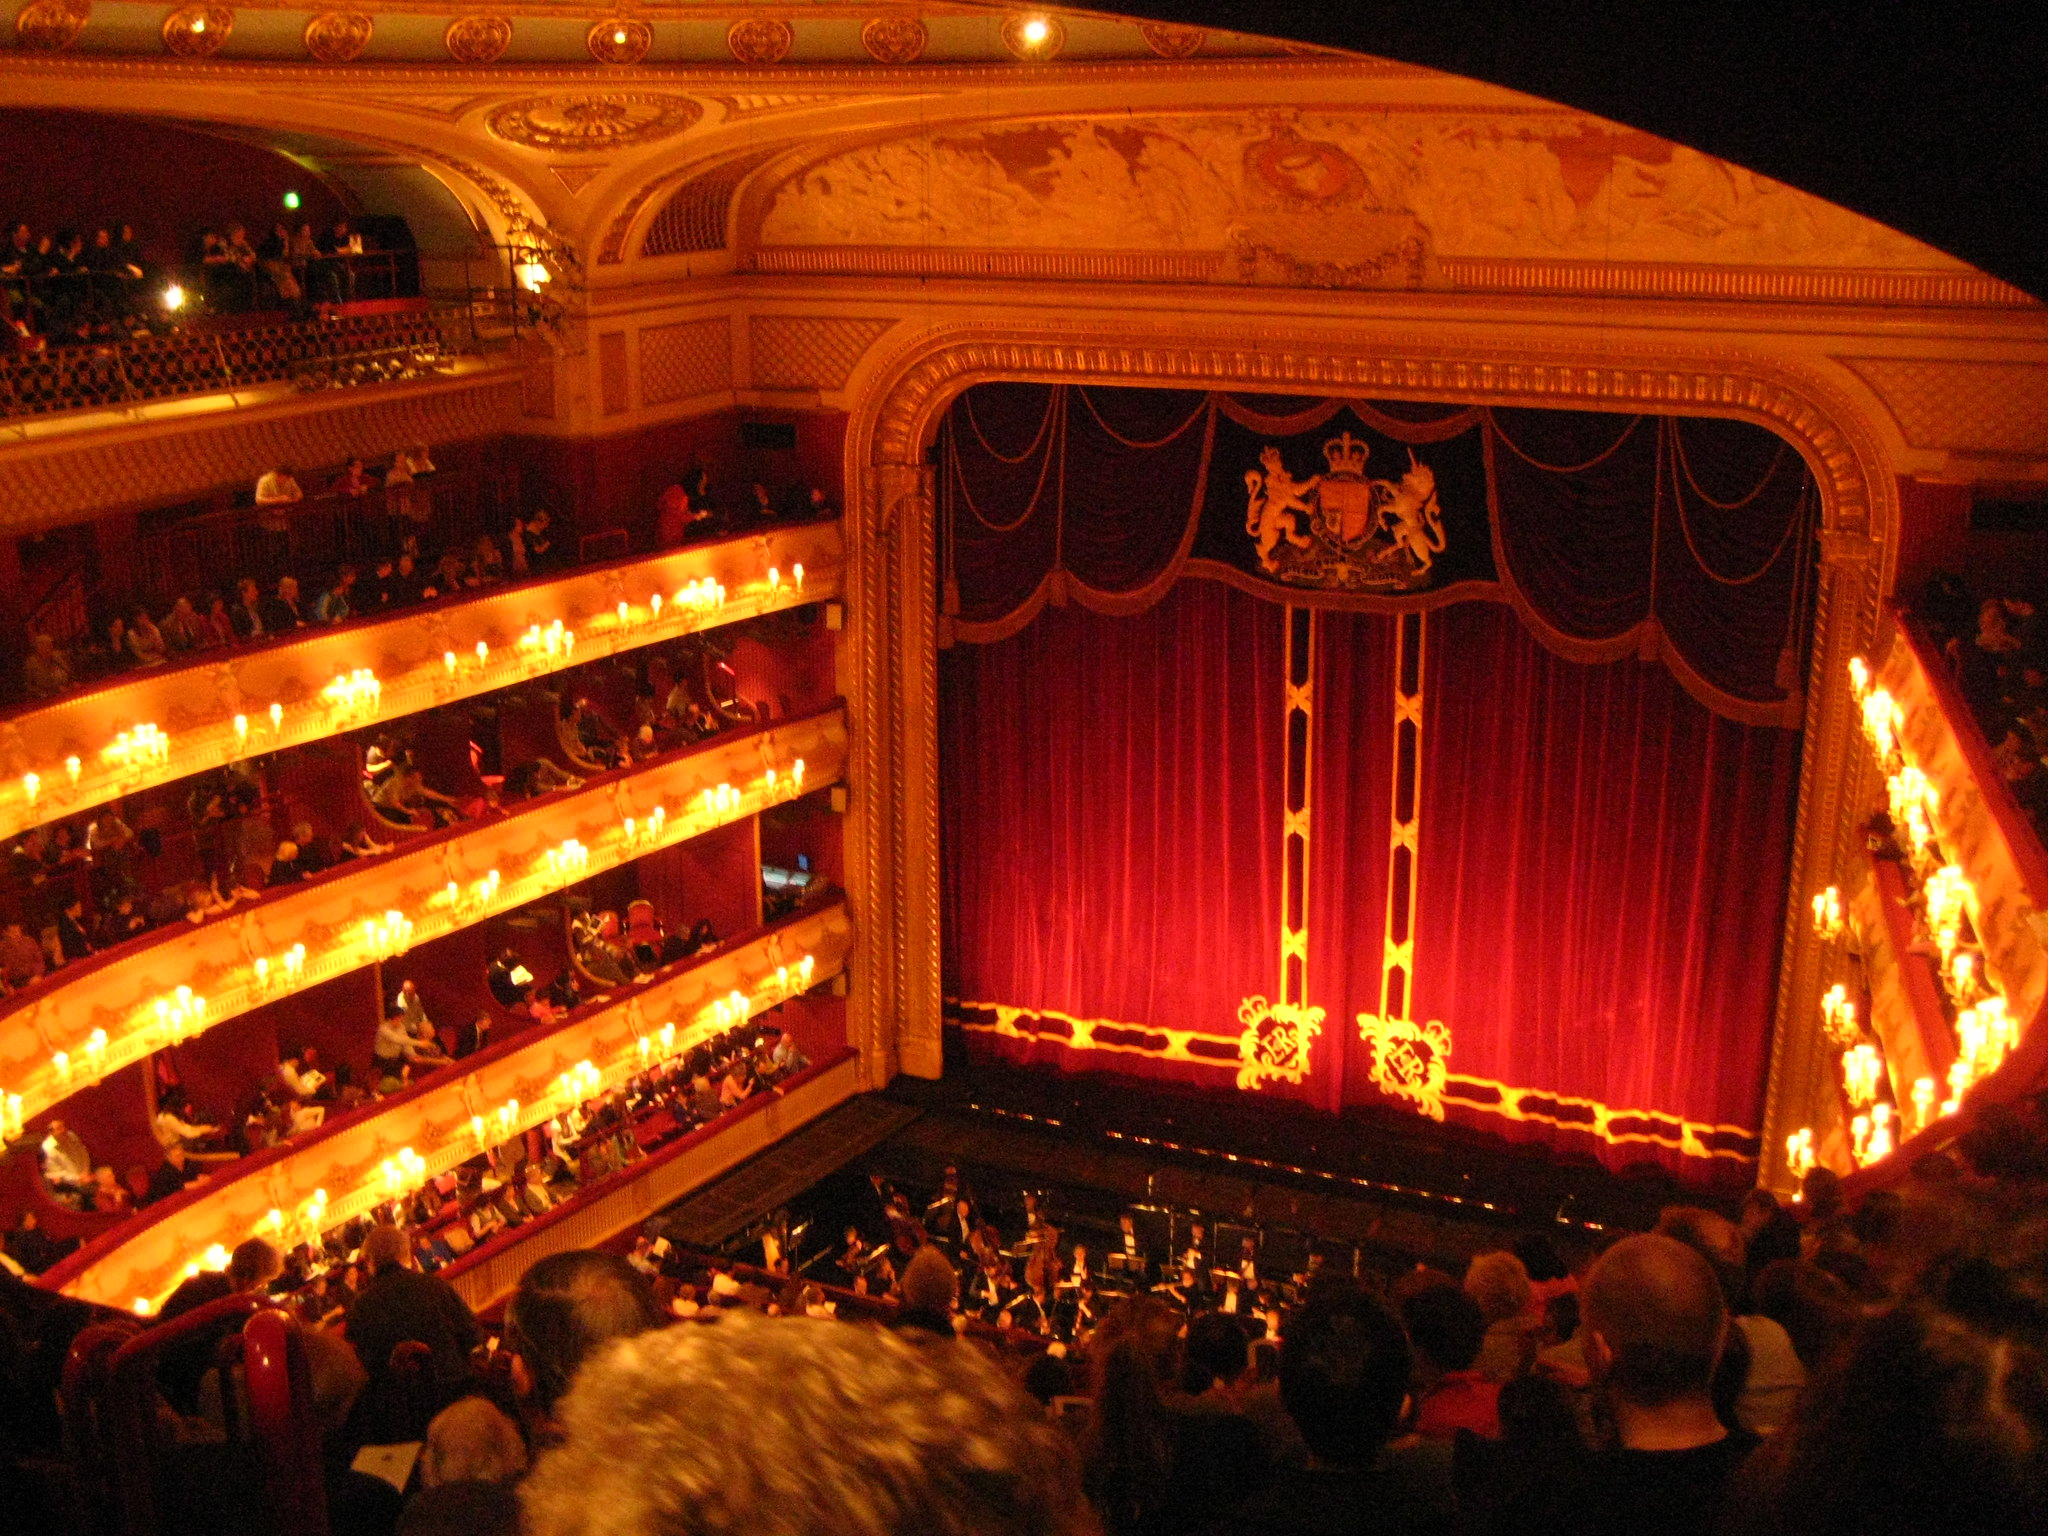 Inside the Royal Opera House, with red curtains across the stage